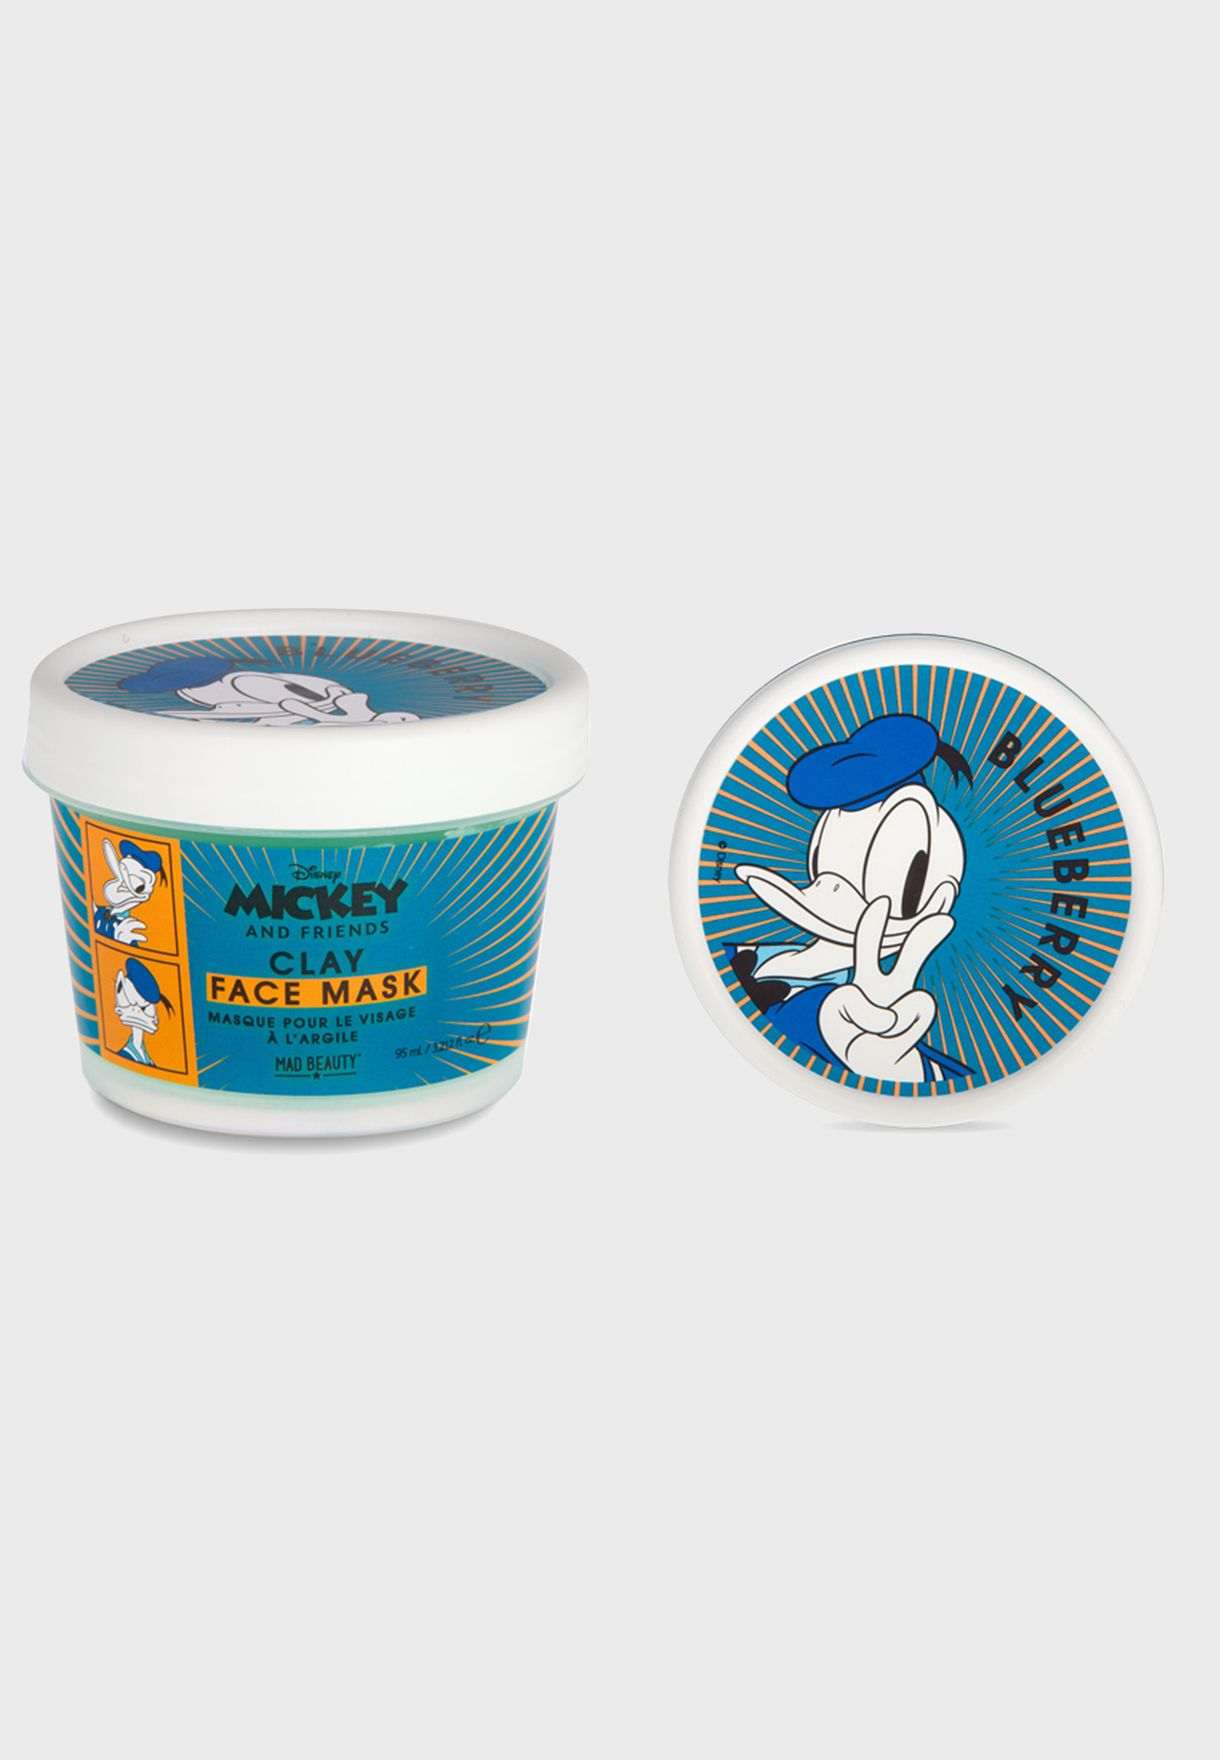 M&F Donald Duck Blueberry Clay Mask